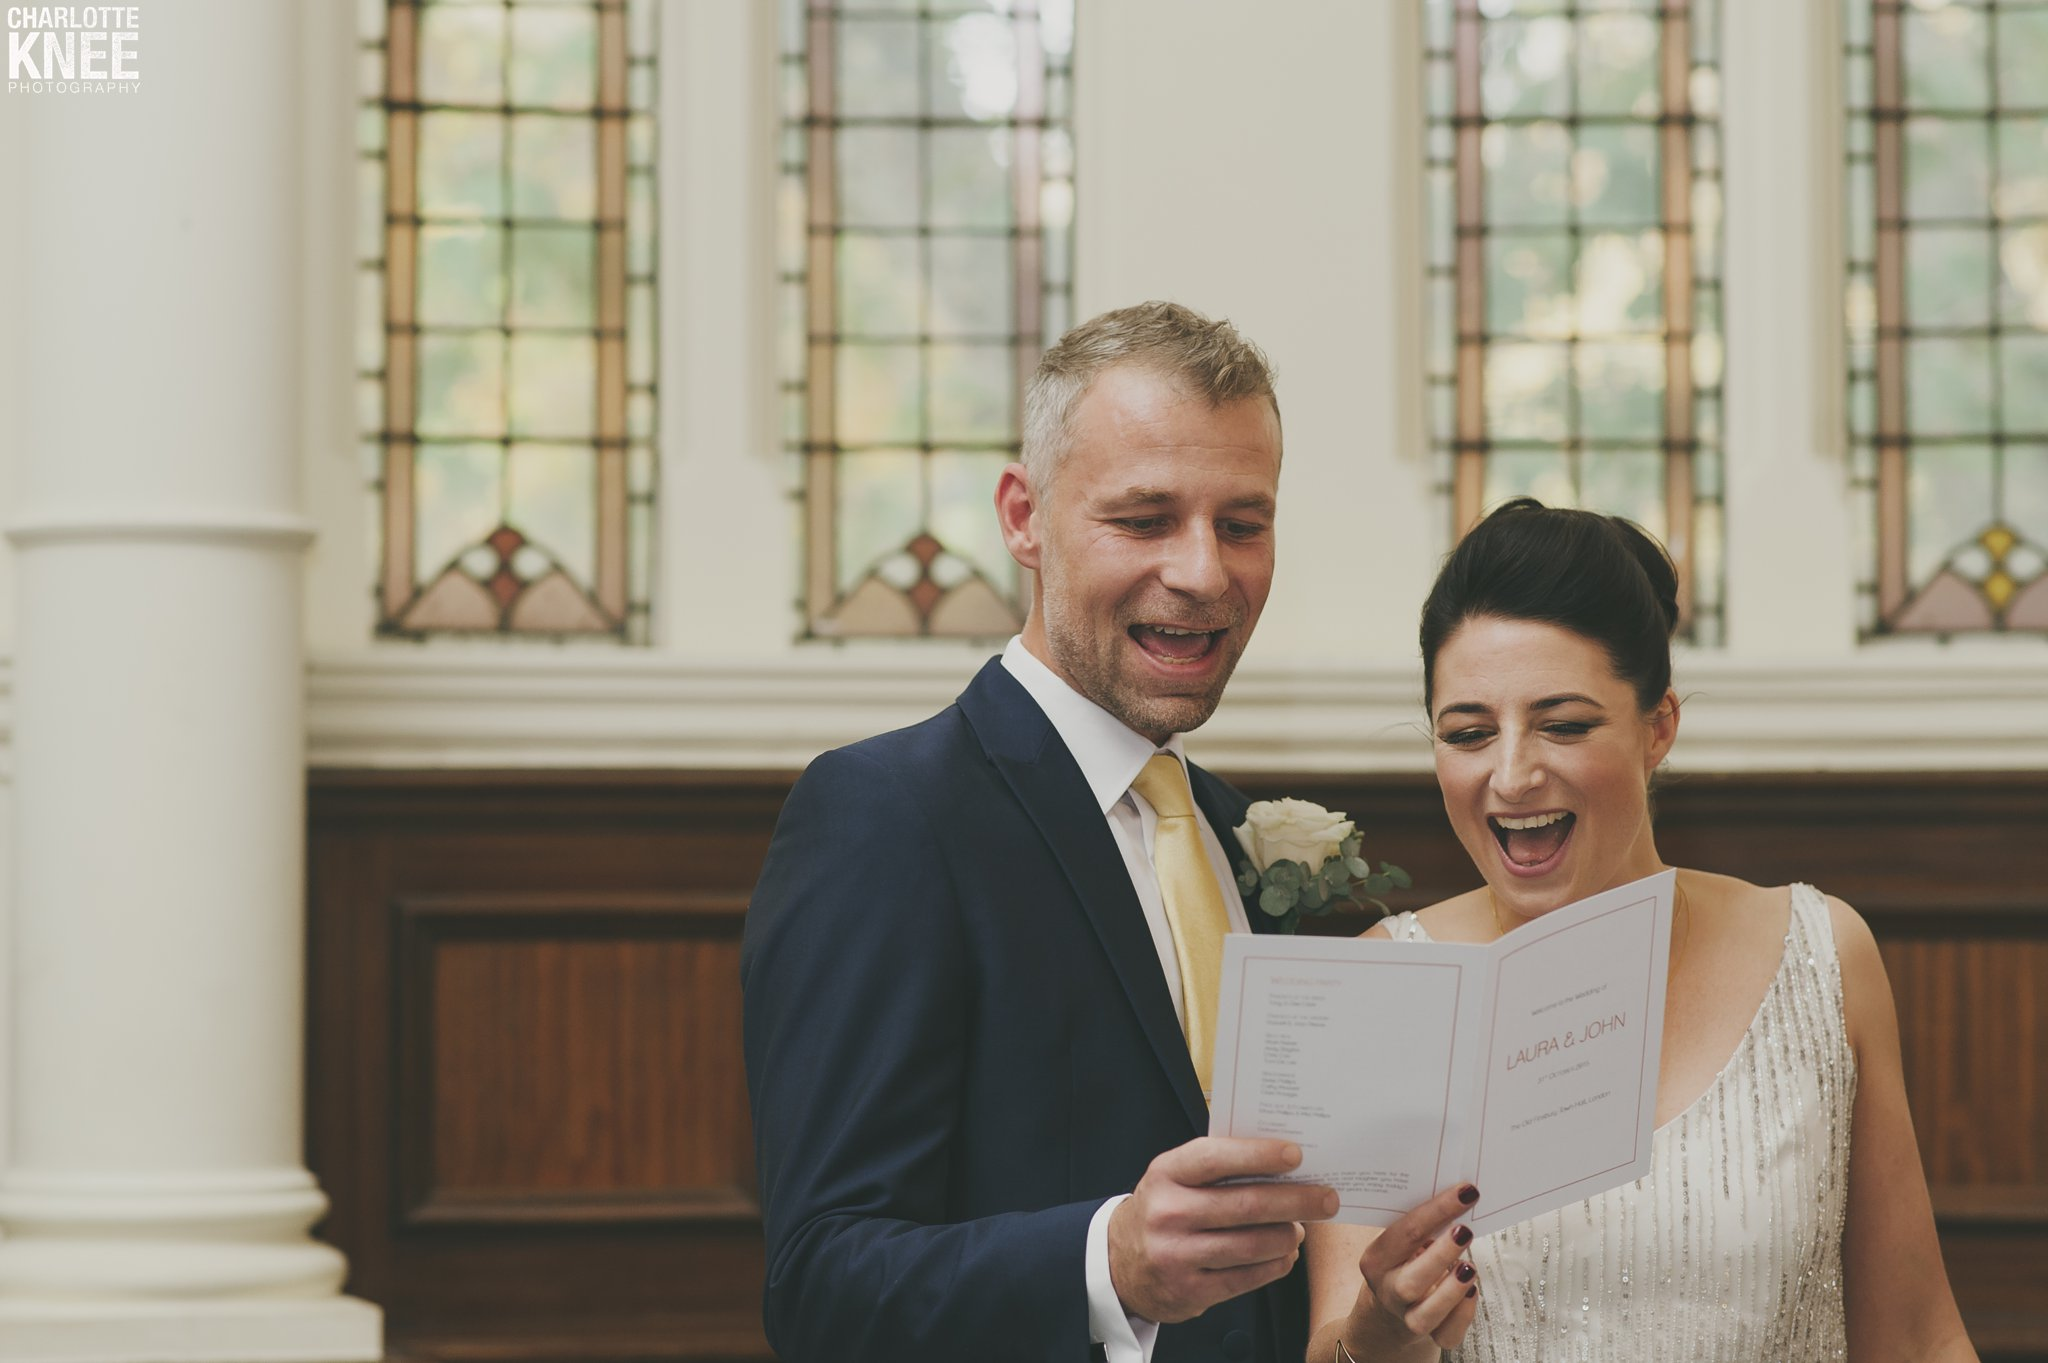 London Wedding Finsbury Town Hall Copyright Charlotte Knee Photography_0068.jpg